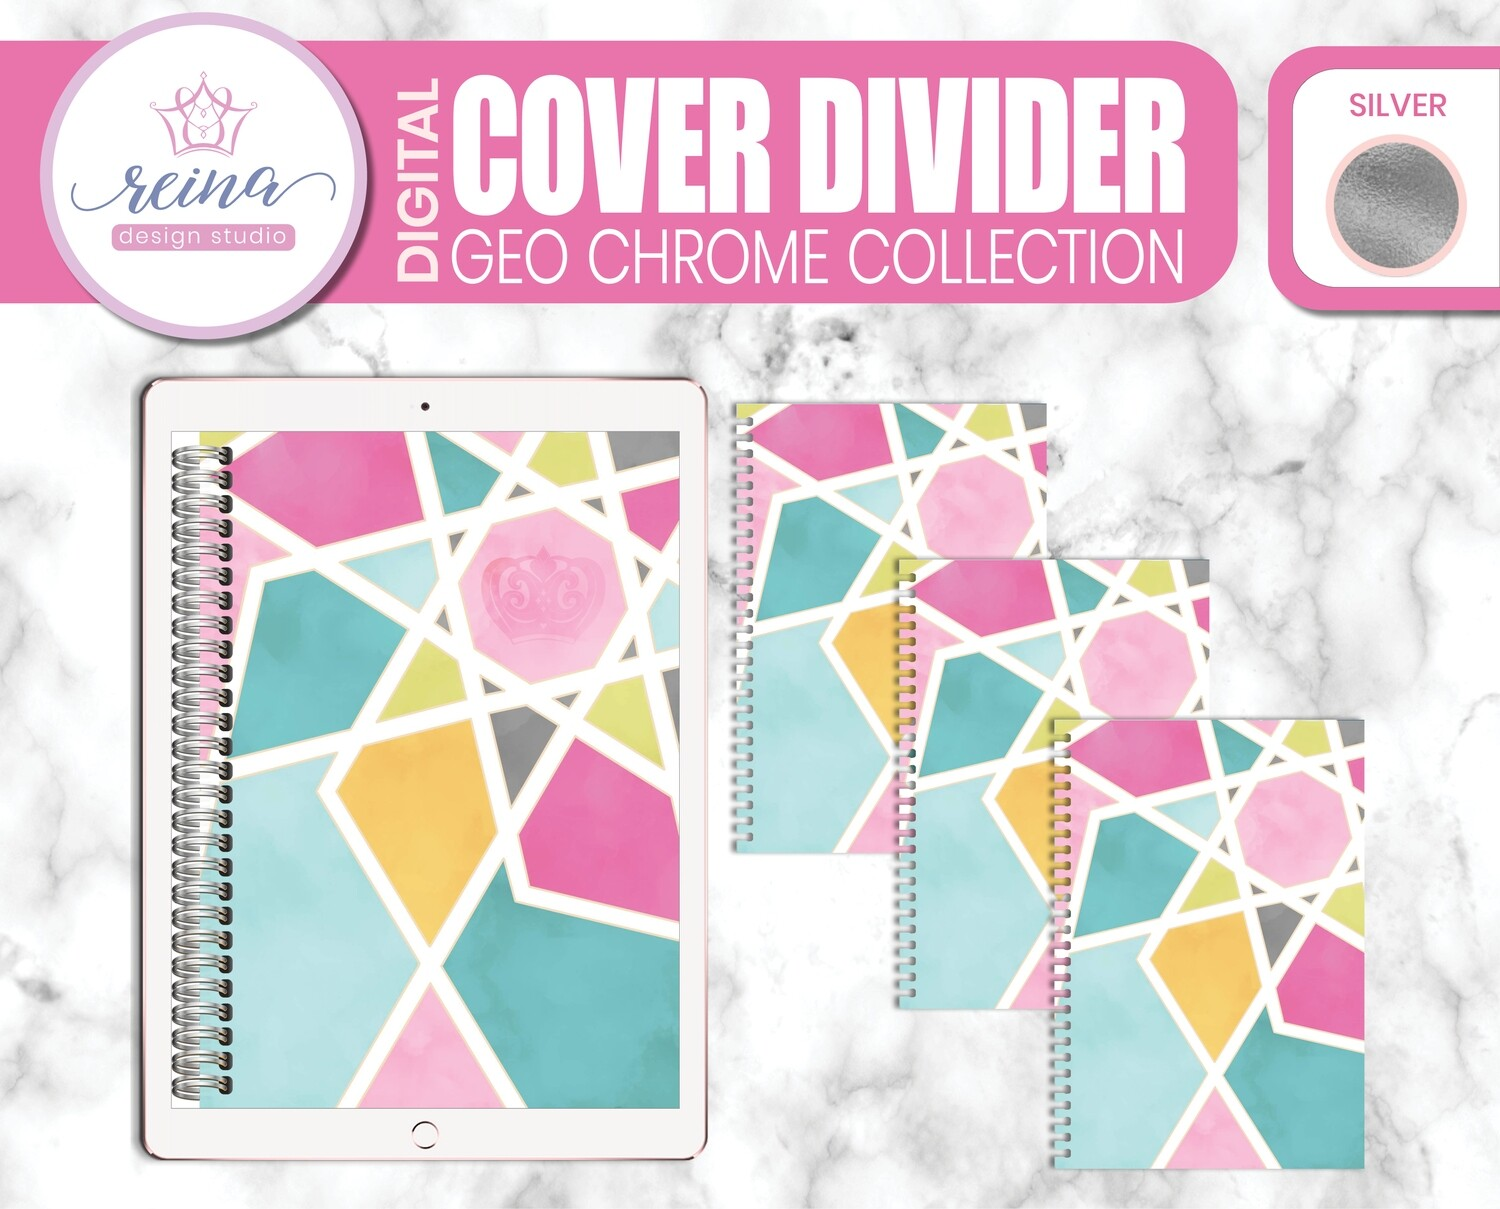 Interchangeable Digital Planner Cover and Dividers | Geo Chrome, Silver